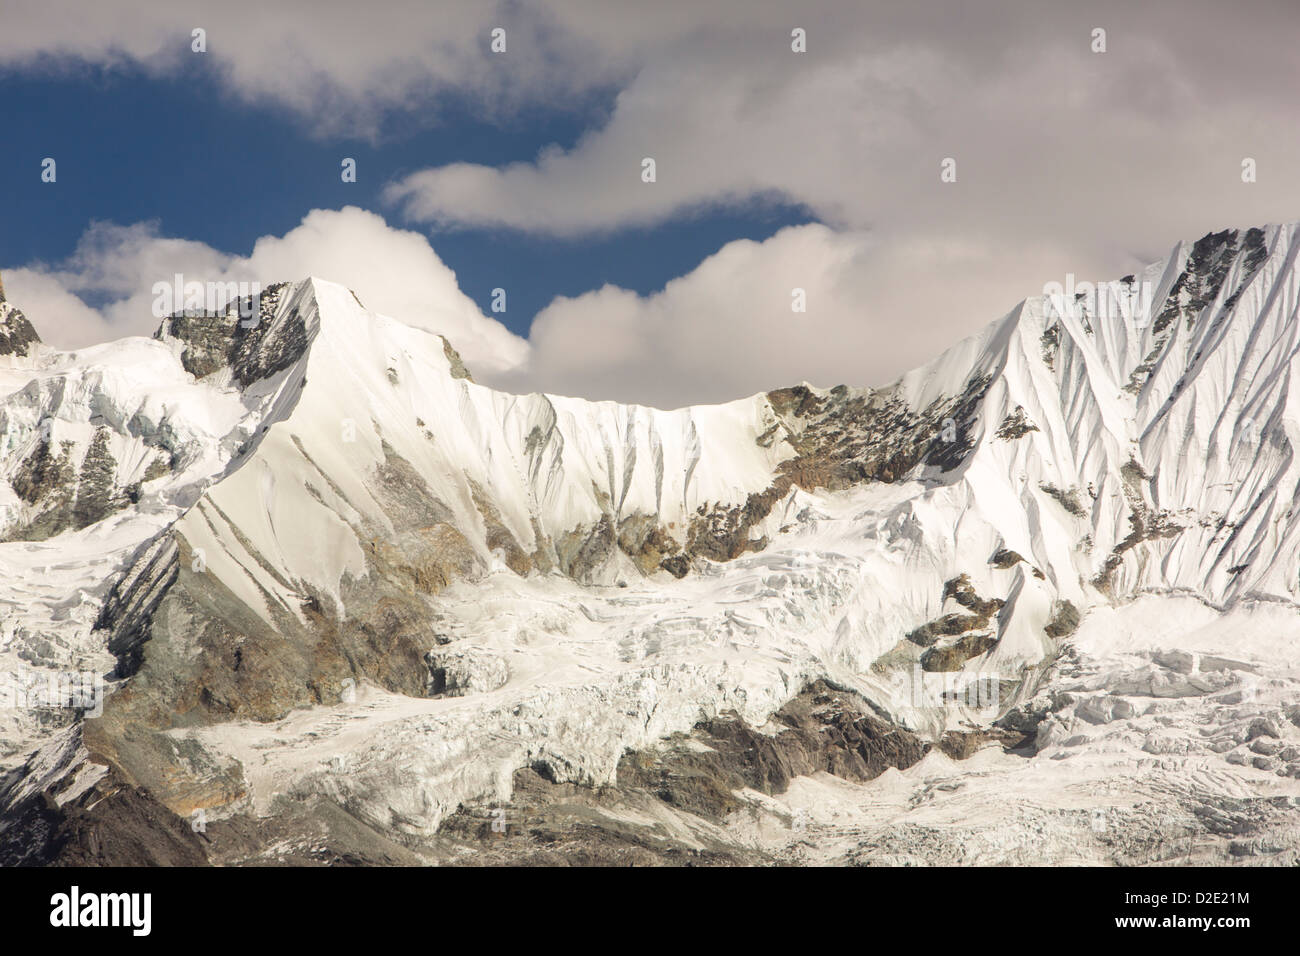 A rapidly retreating glacier on the side of the 6428 metre peak of Gandharwa Chuli in the annapurna sanctuary, Nepalese - Stock Image